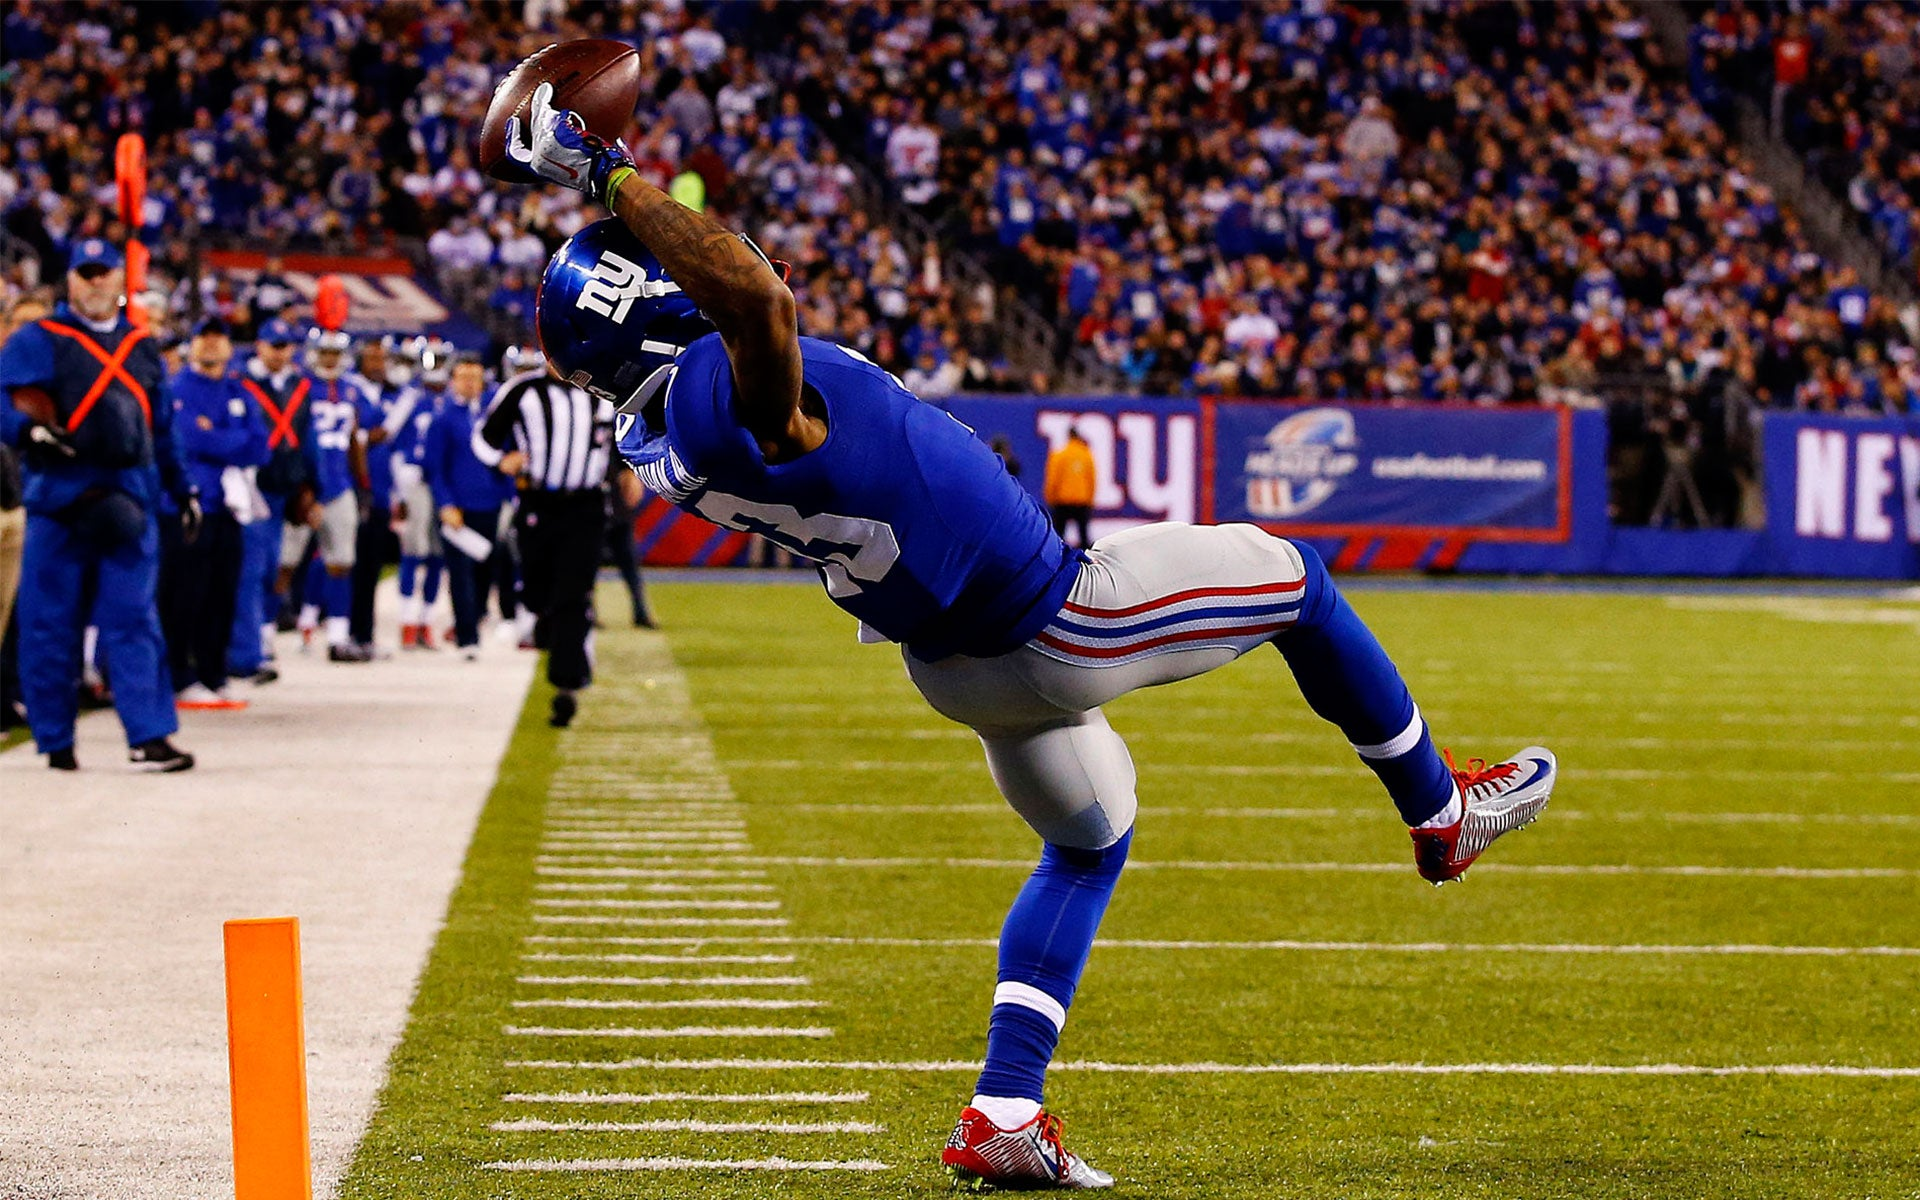 HD wallpapers new york giants schedule 2016 espn